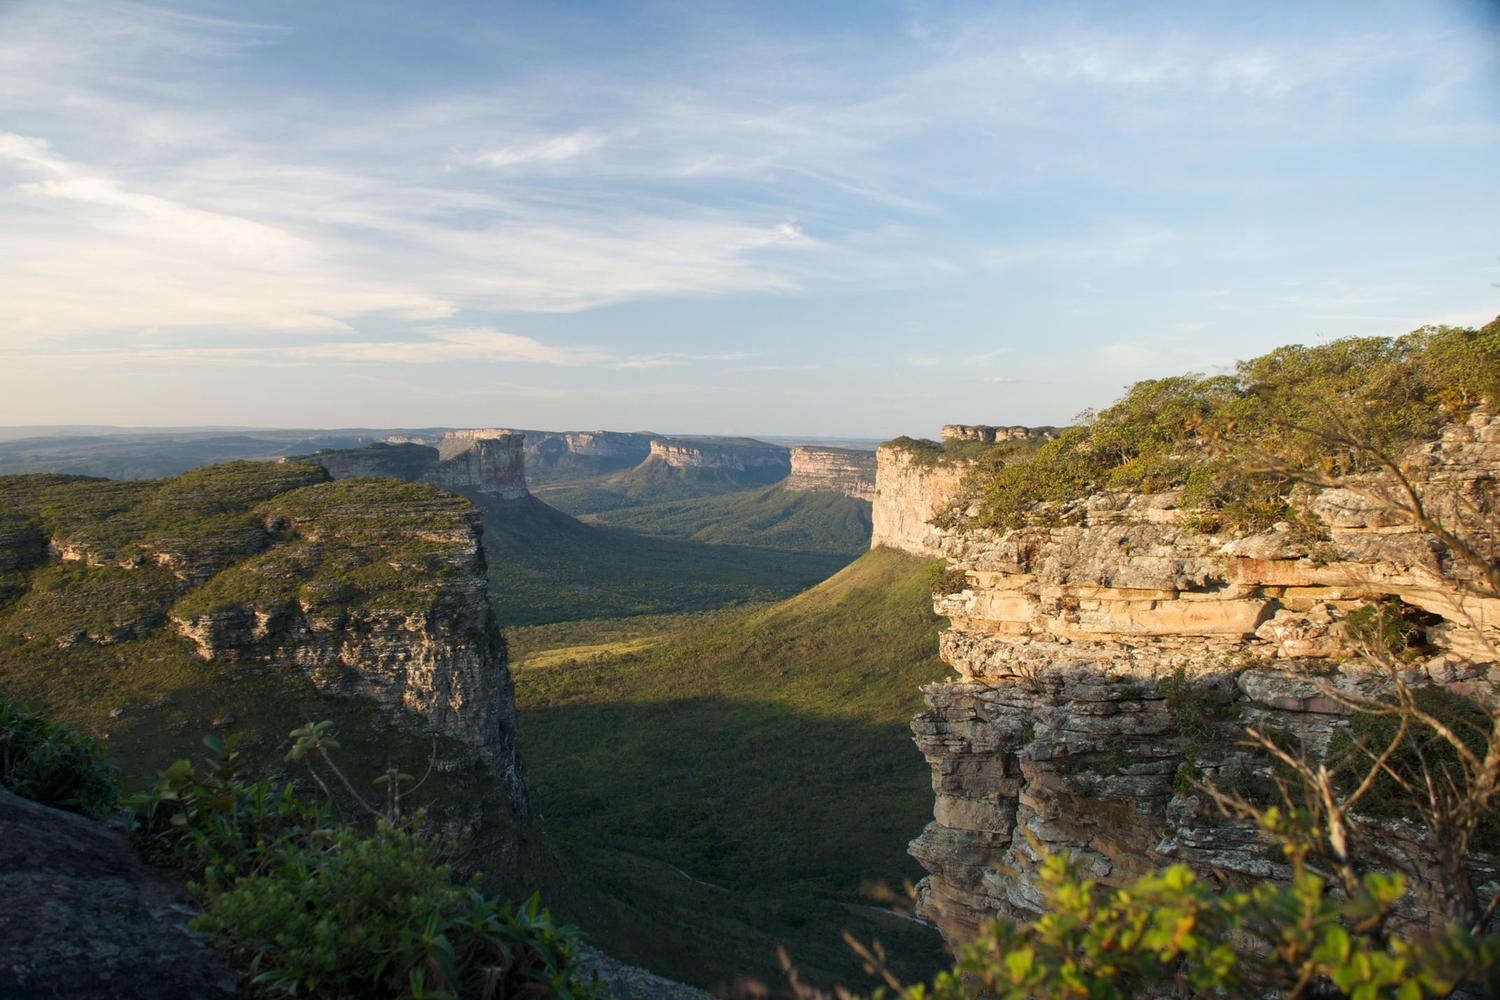 The view from Pao Ignacio hill in the Chapada Diamantina